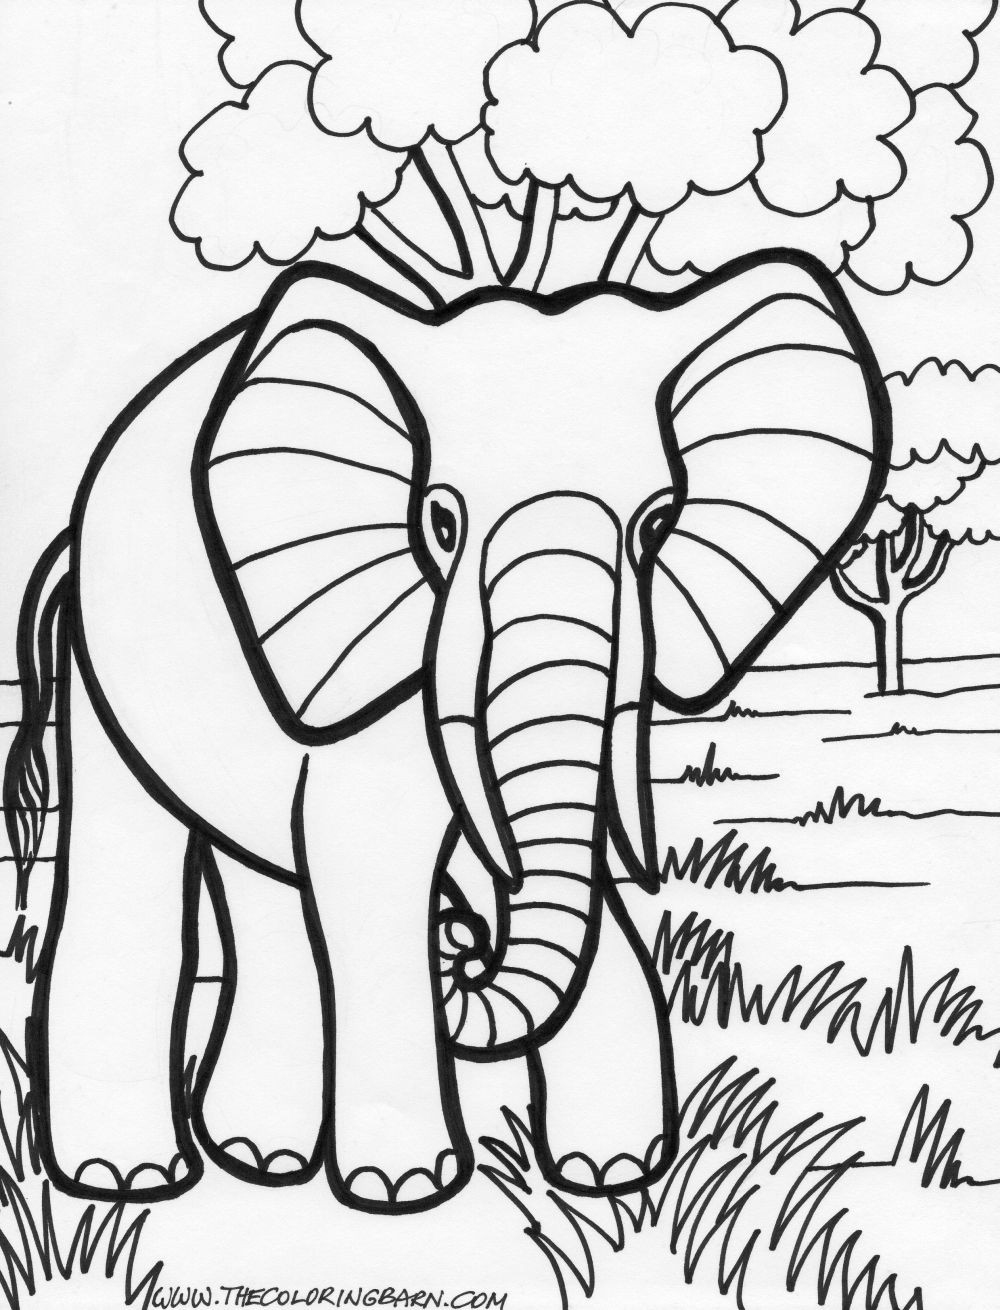 Best ideas about Coloring Book Pages Of Elephants . Save or Pin Black beauty 18 Elephant coloring pages Now.